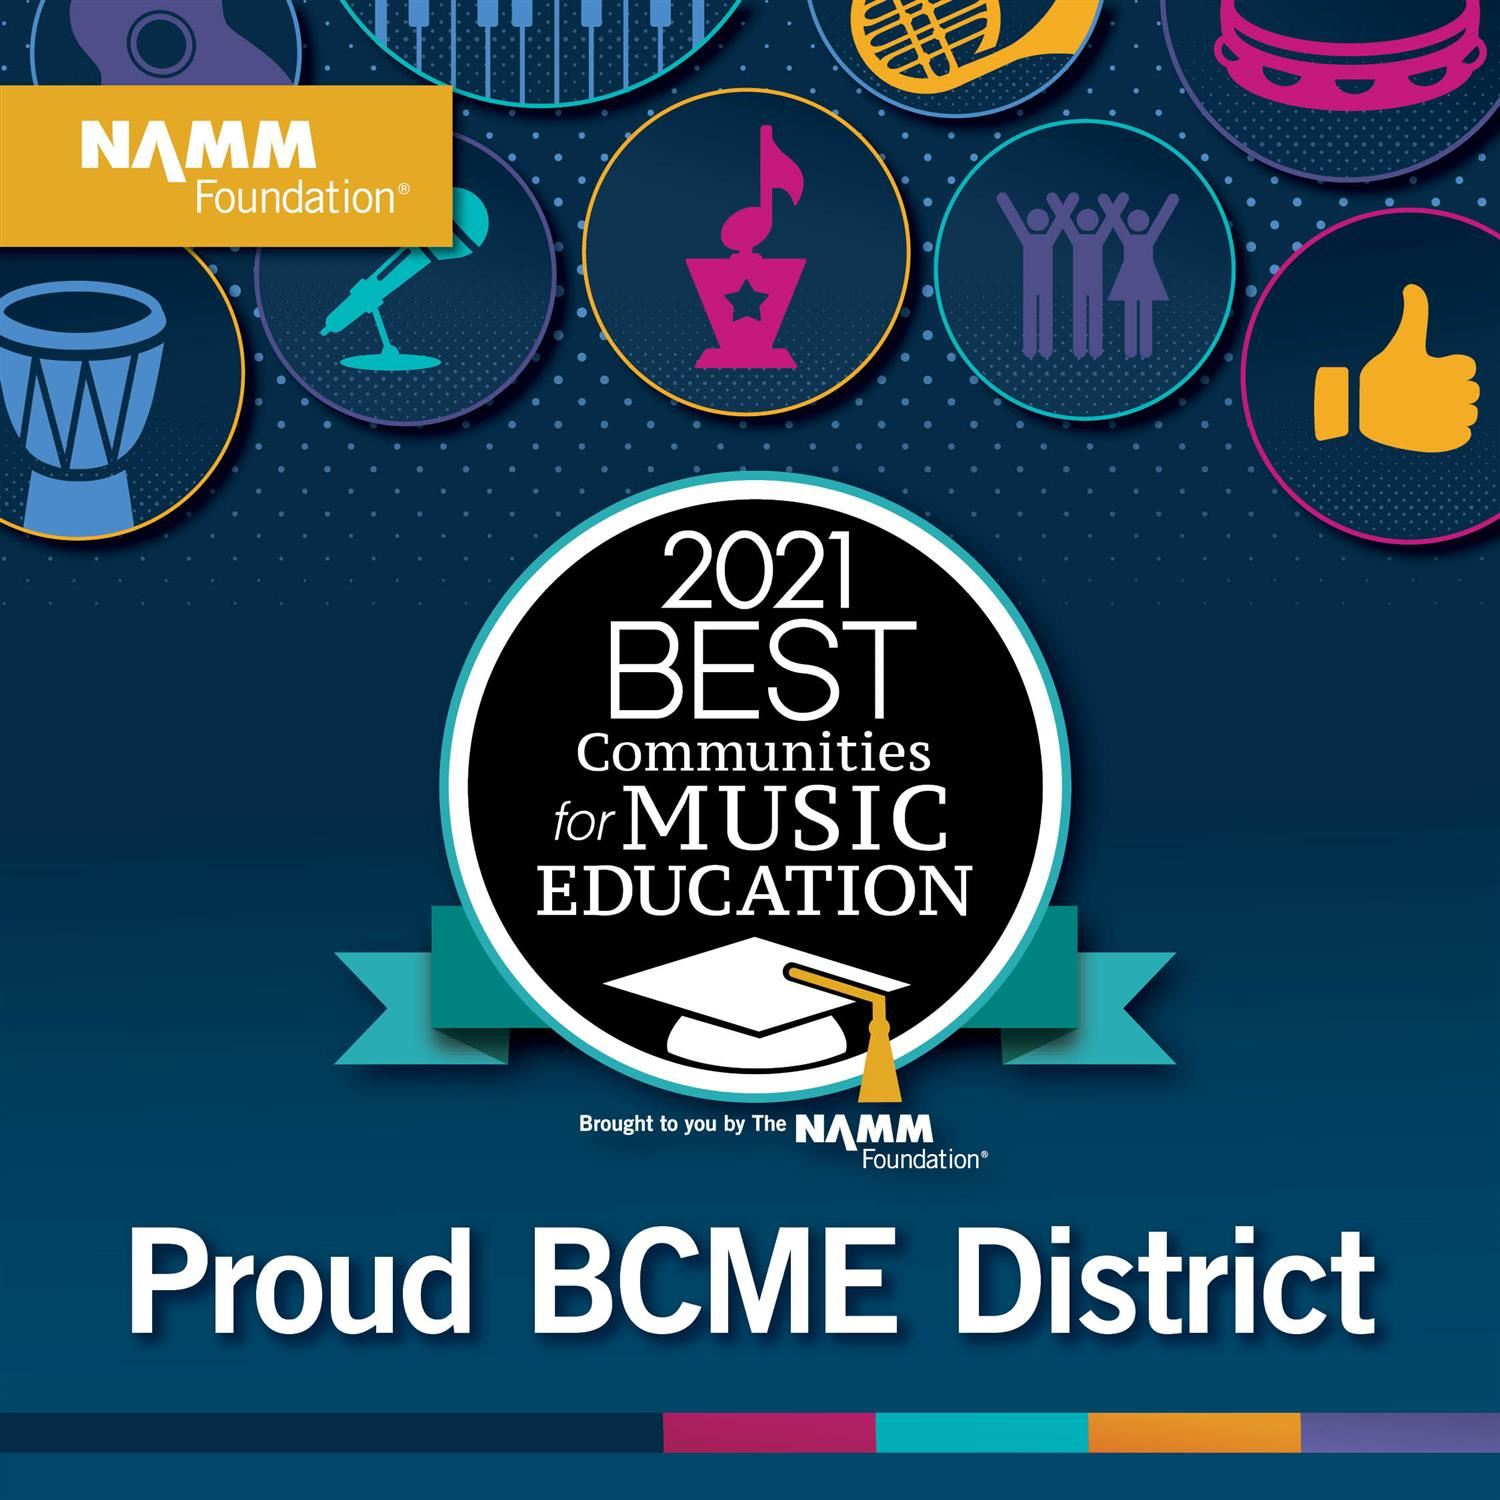 Sycamore Music Dept. Receives National Recognition for 12th Year